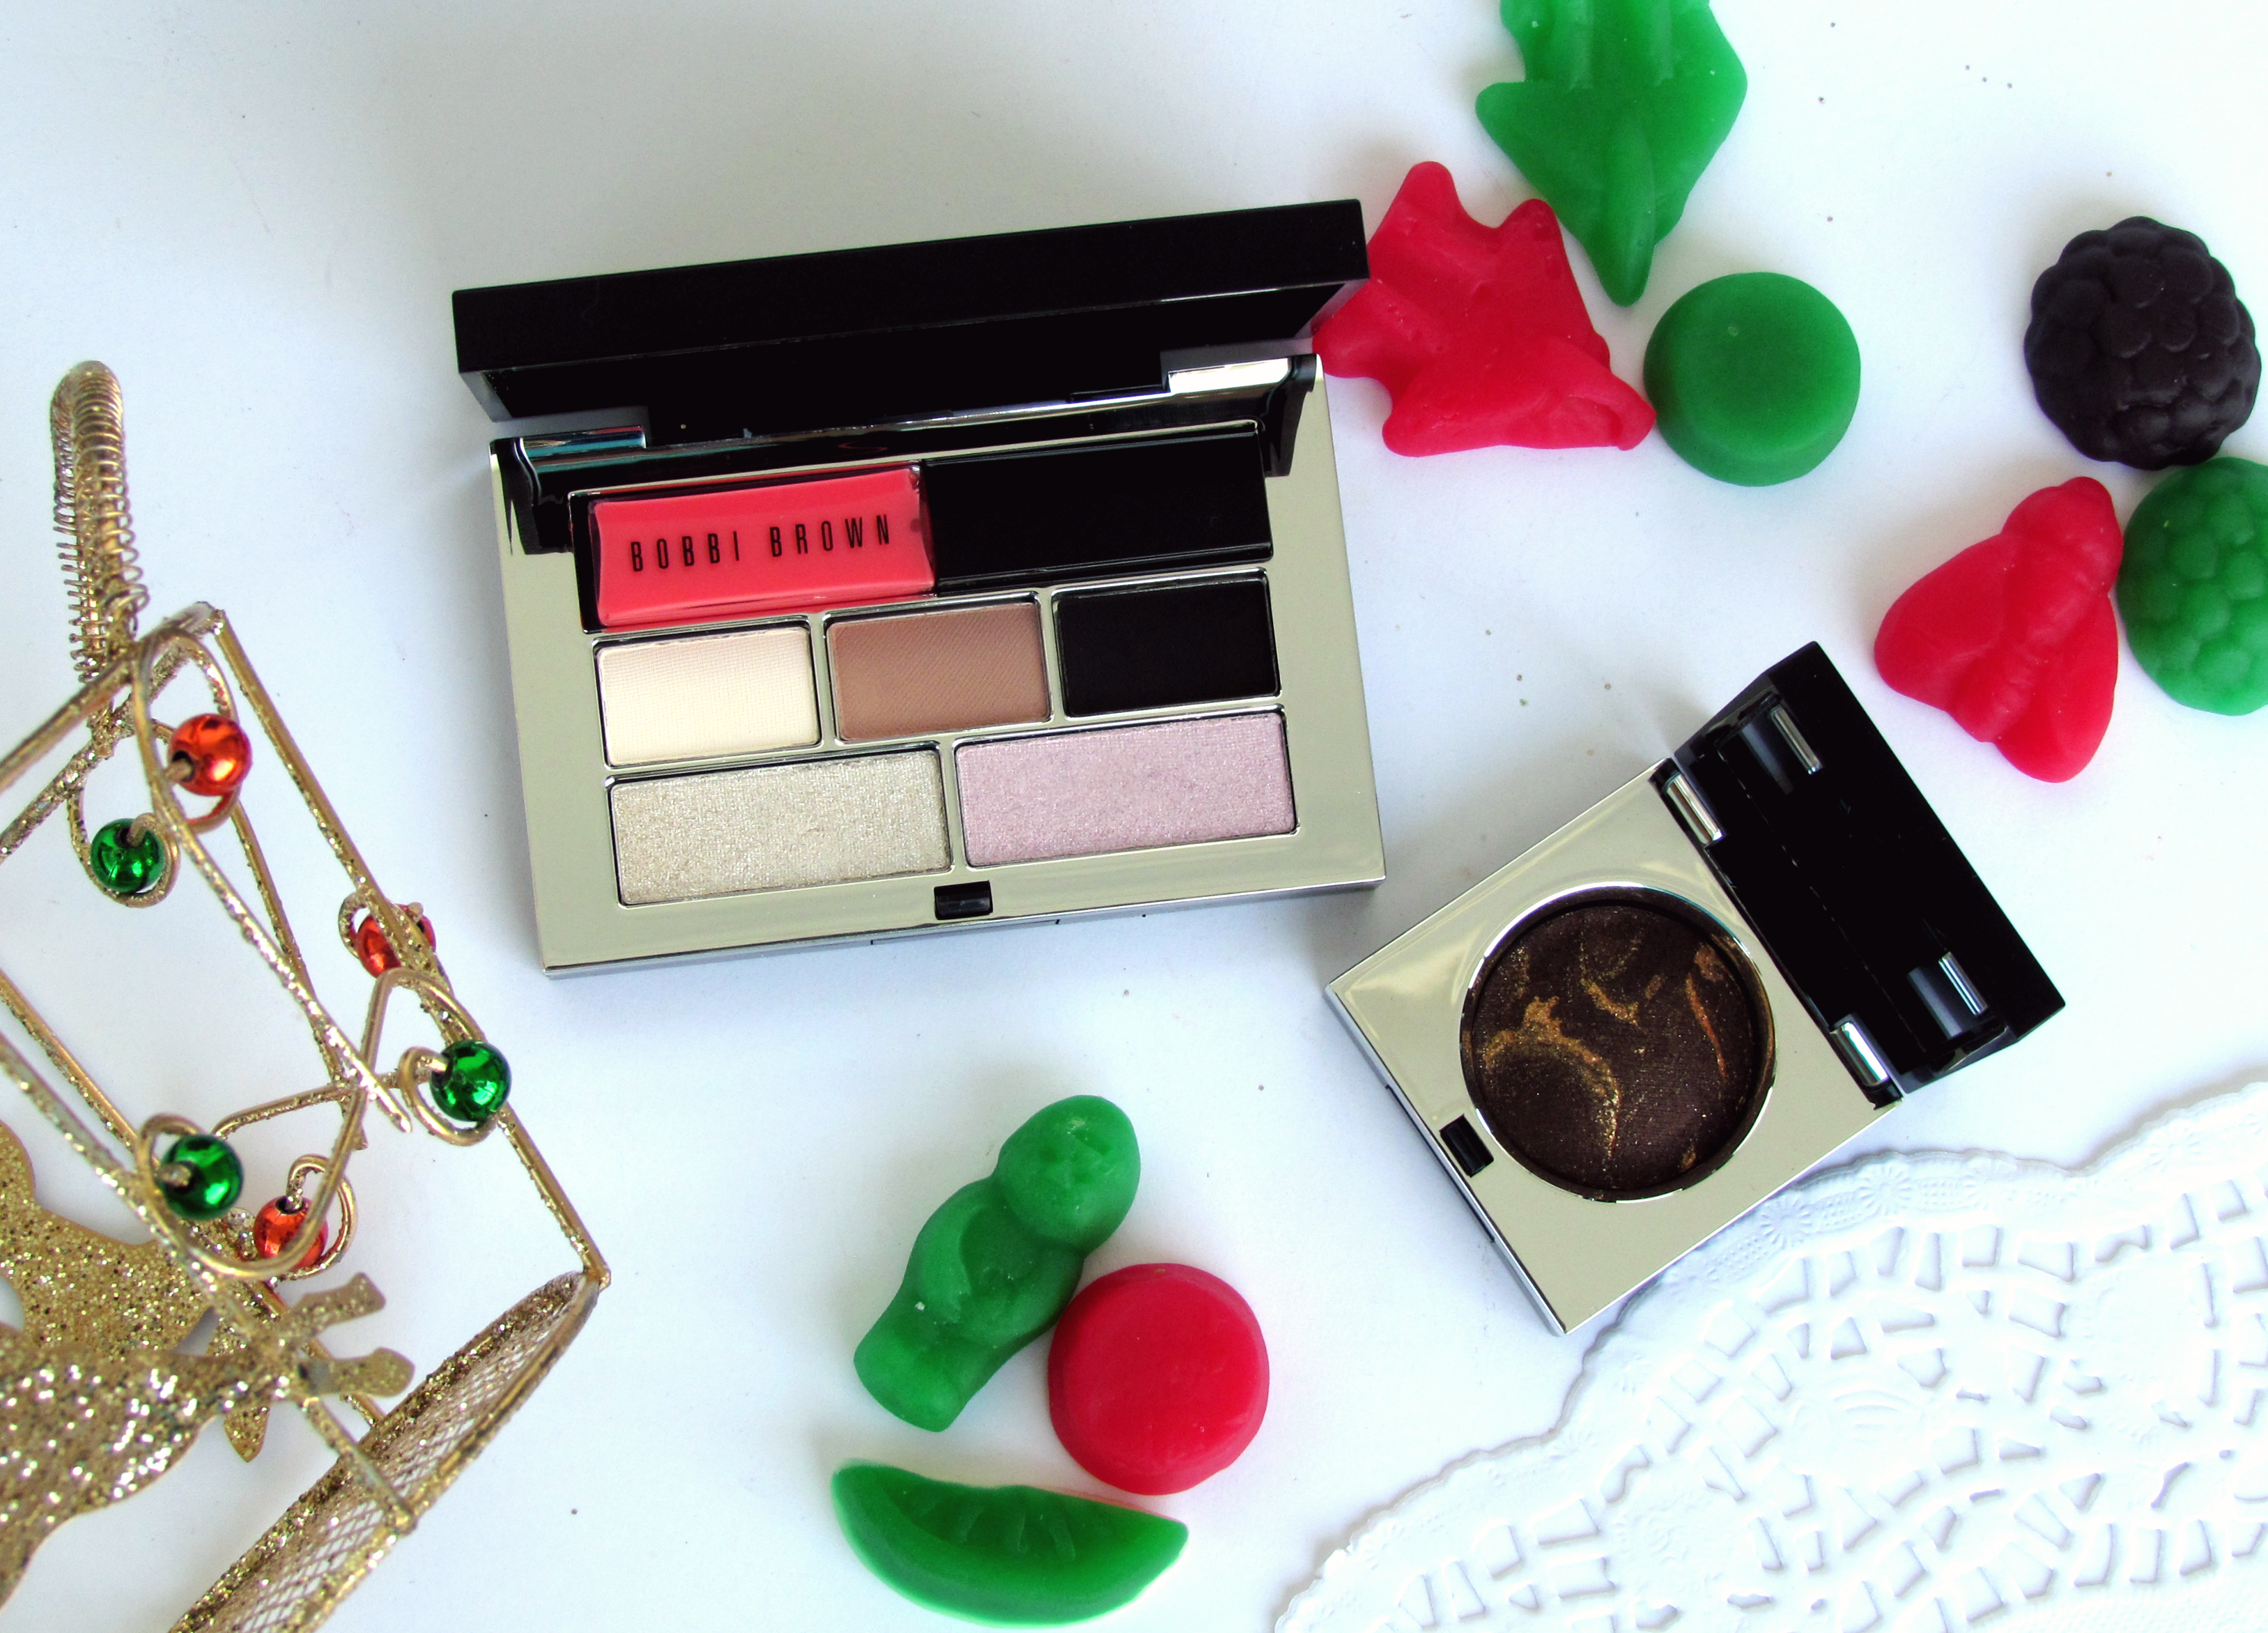 GIFT IDEAS: COUNT DOWN TO CHRISTMAS – BOBBI BROWN